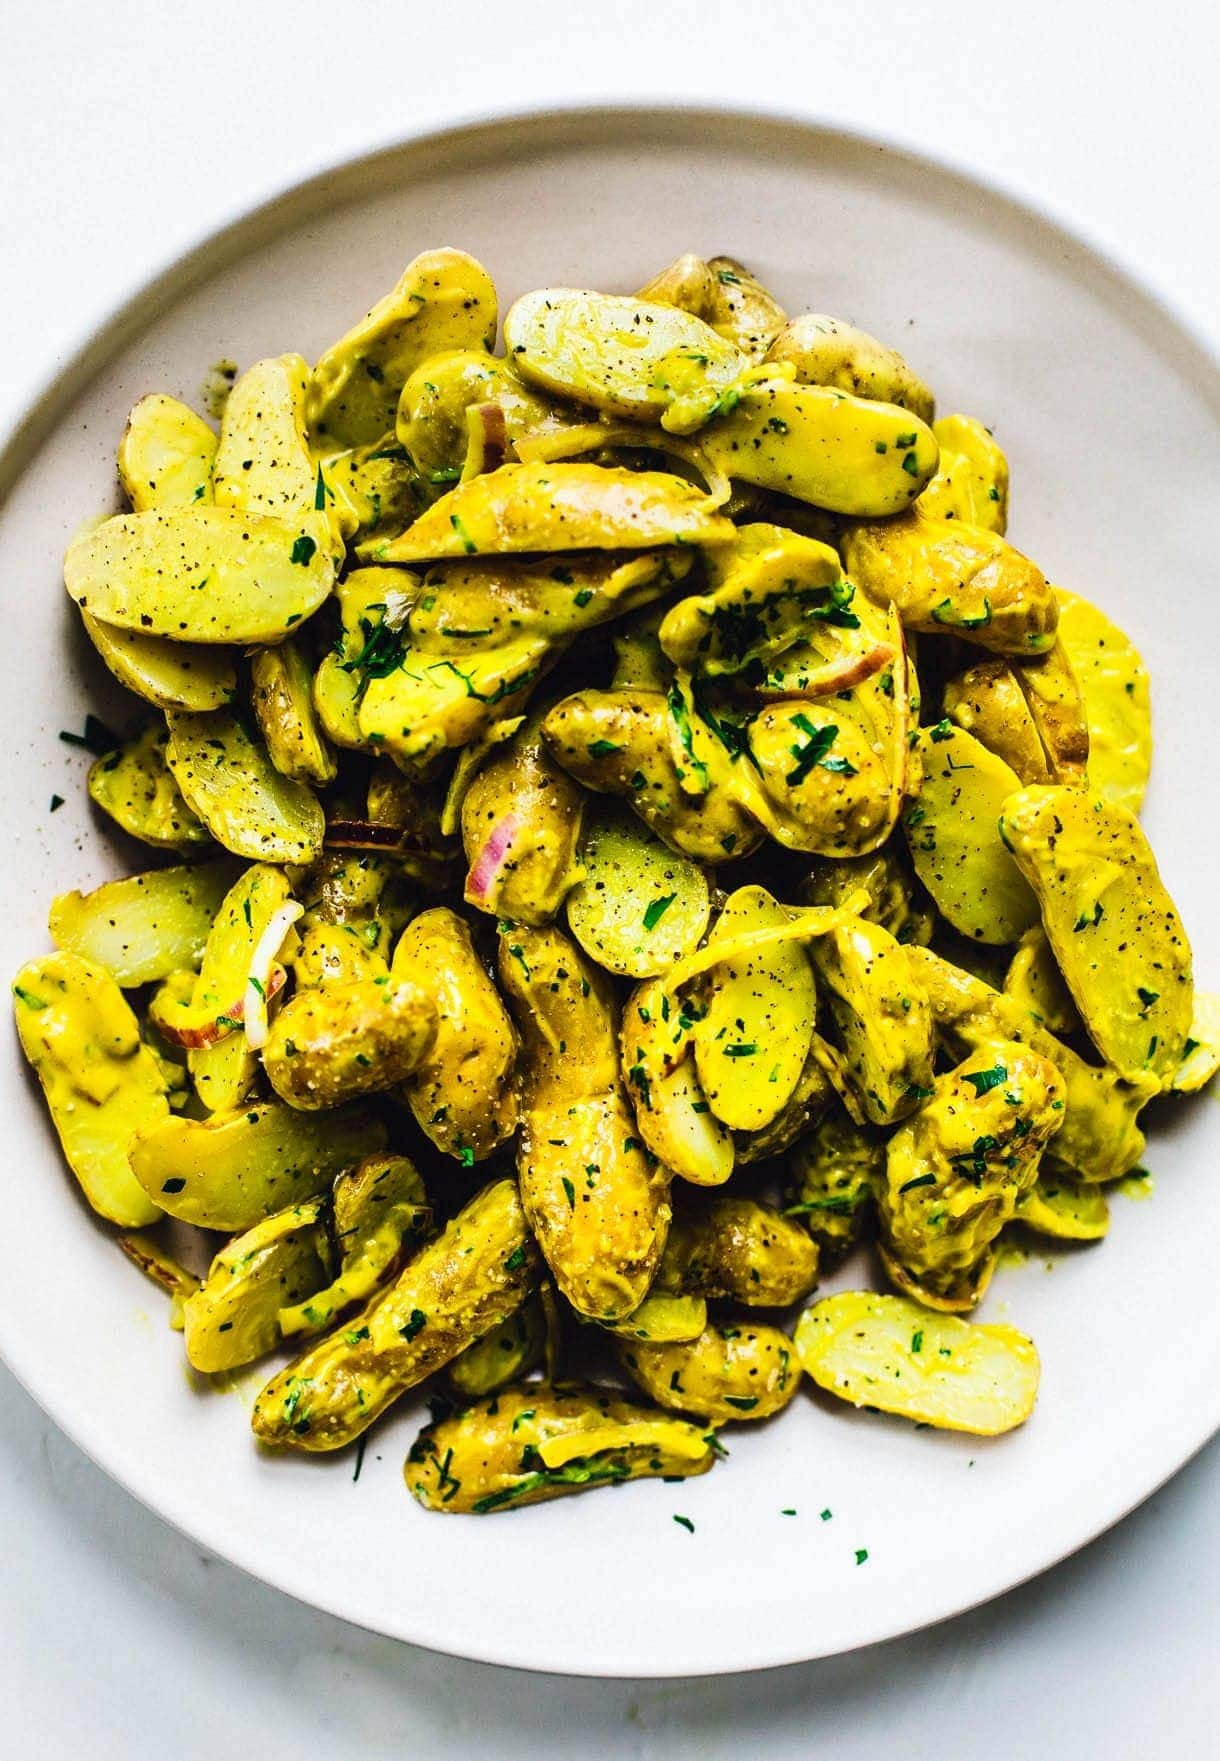 Sunshine Turmeric Potato Salad // golden potato salad // fingerling potato salad